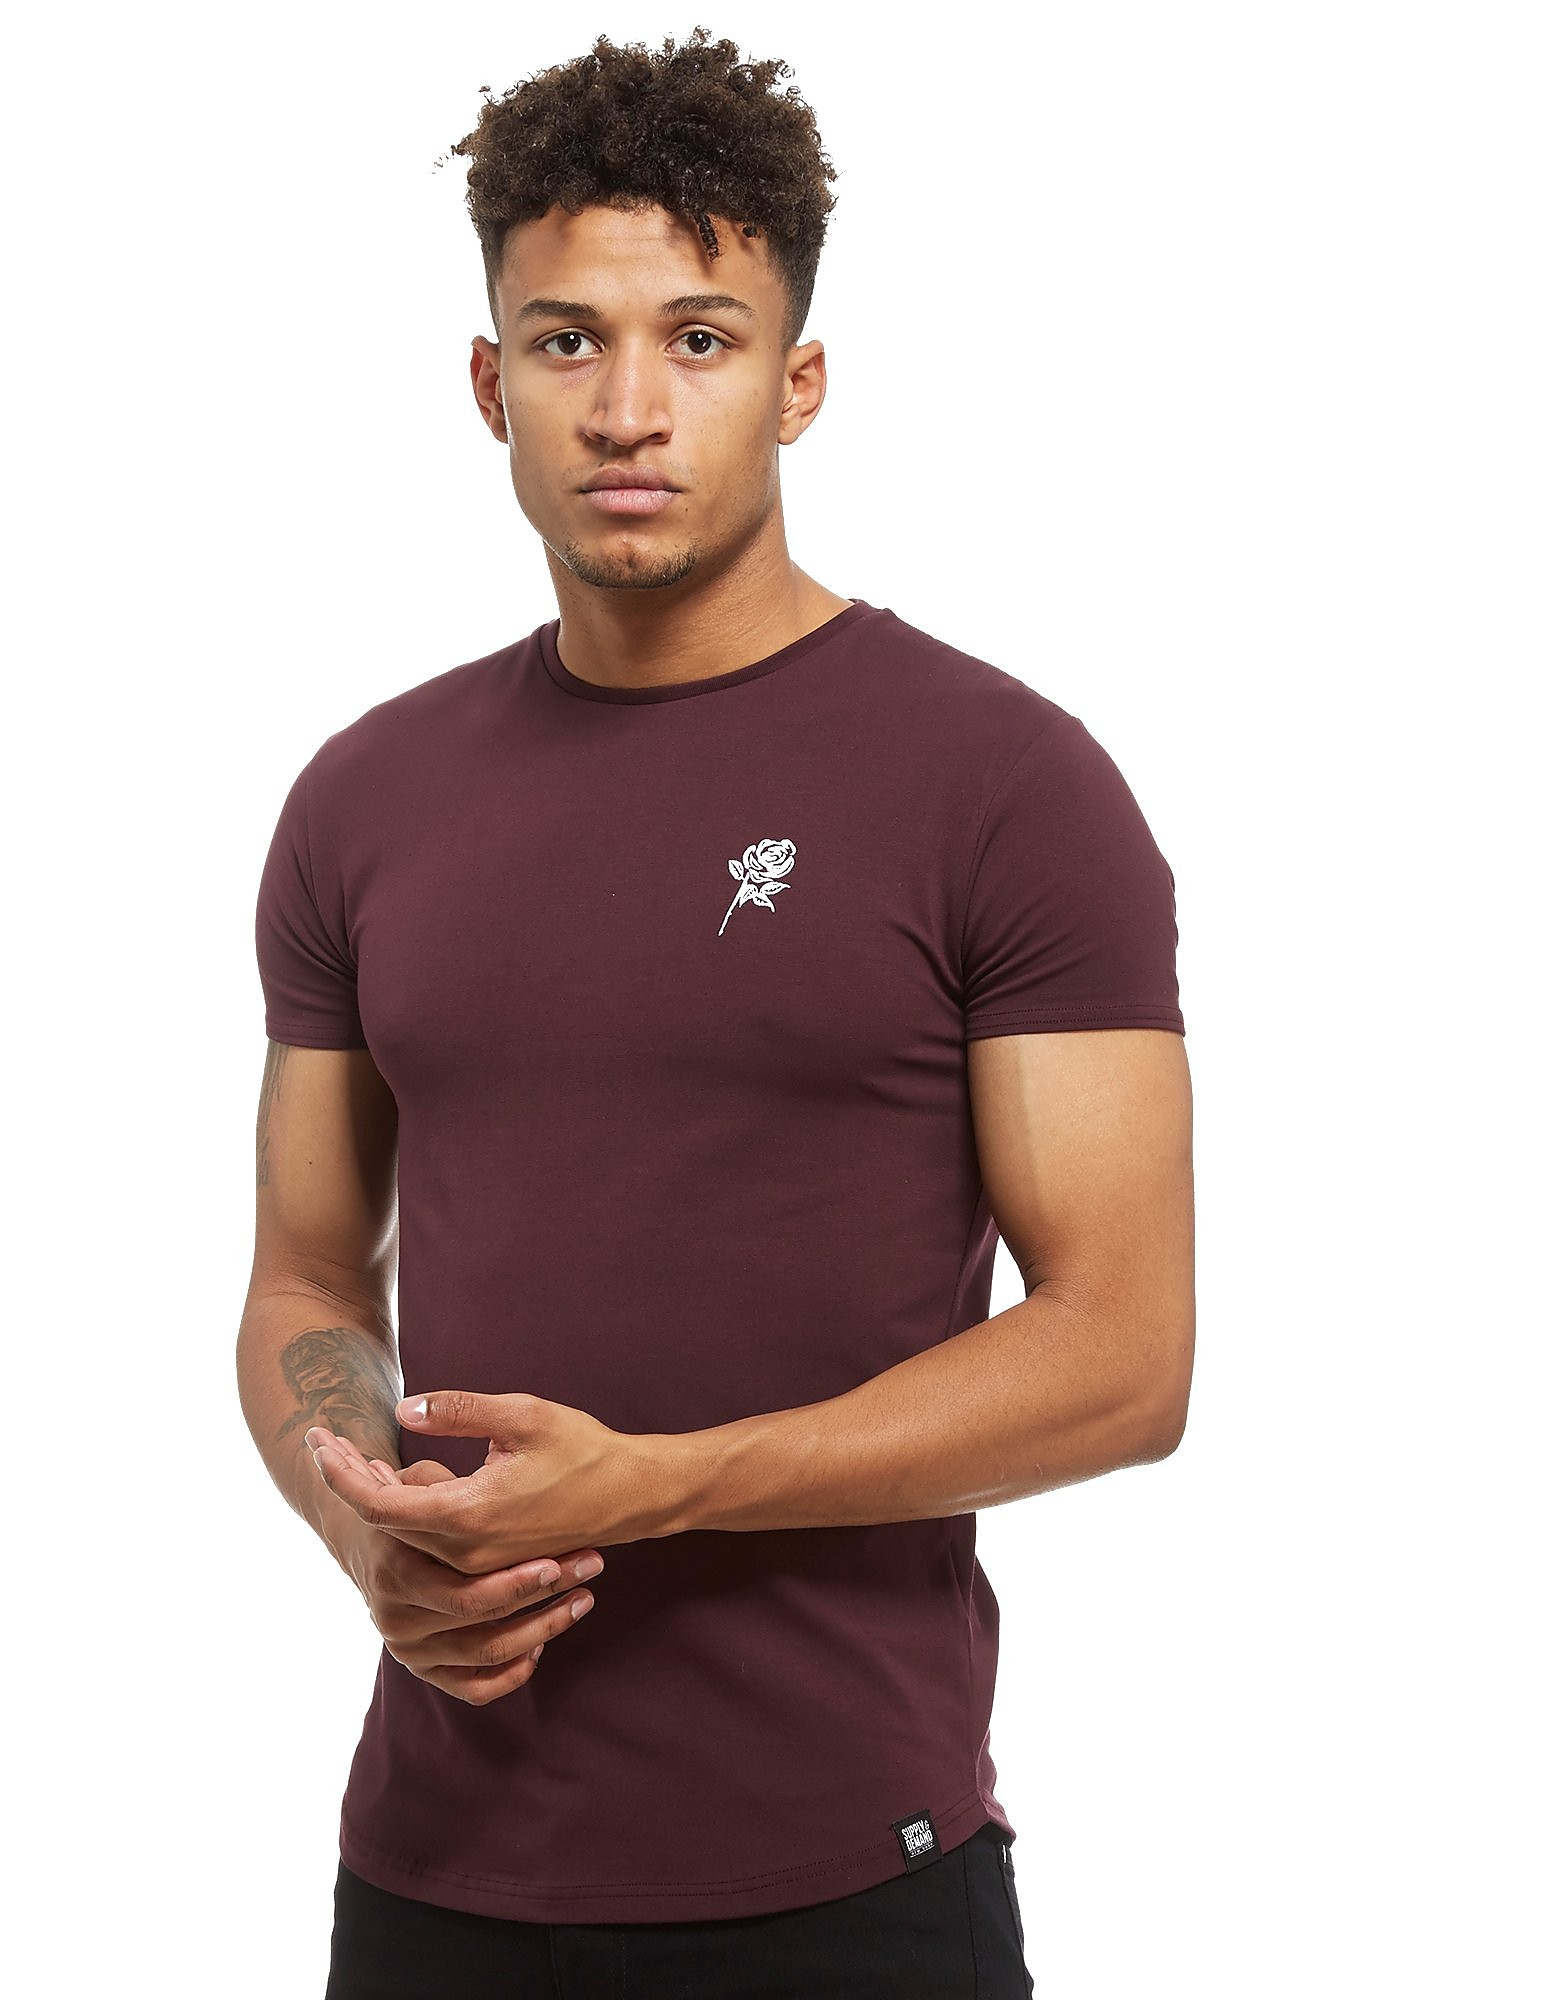 Supply & Demand Reps T-Shirt - Only at JD, Burgundy/White